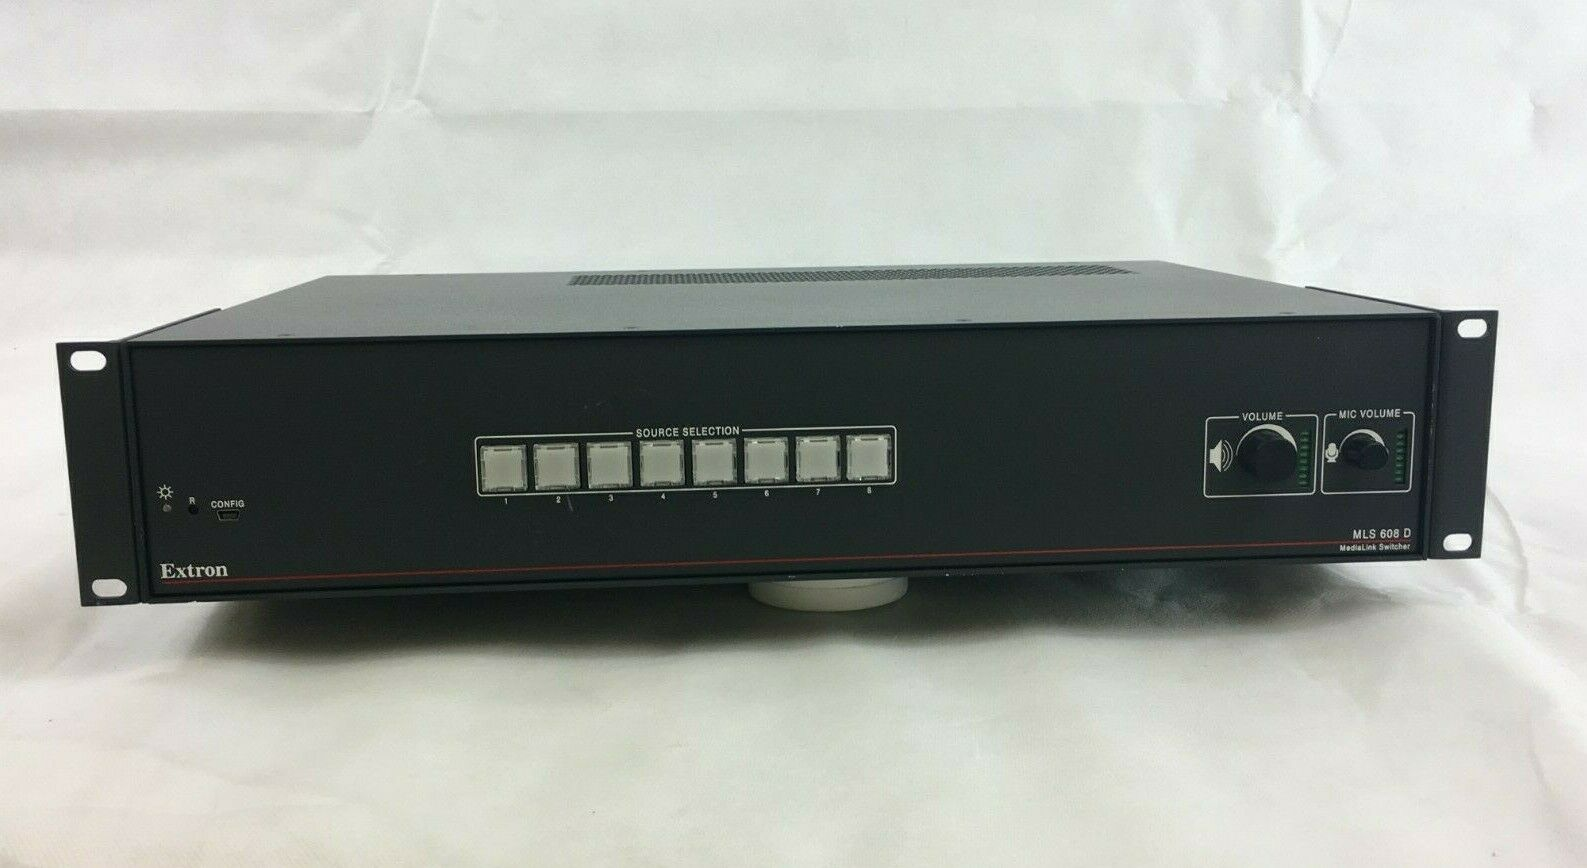 Extron MLS608D MediaLink Switcher - 8 Input Switcher With ProDSP. P435